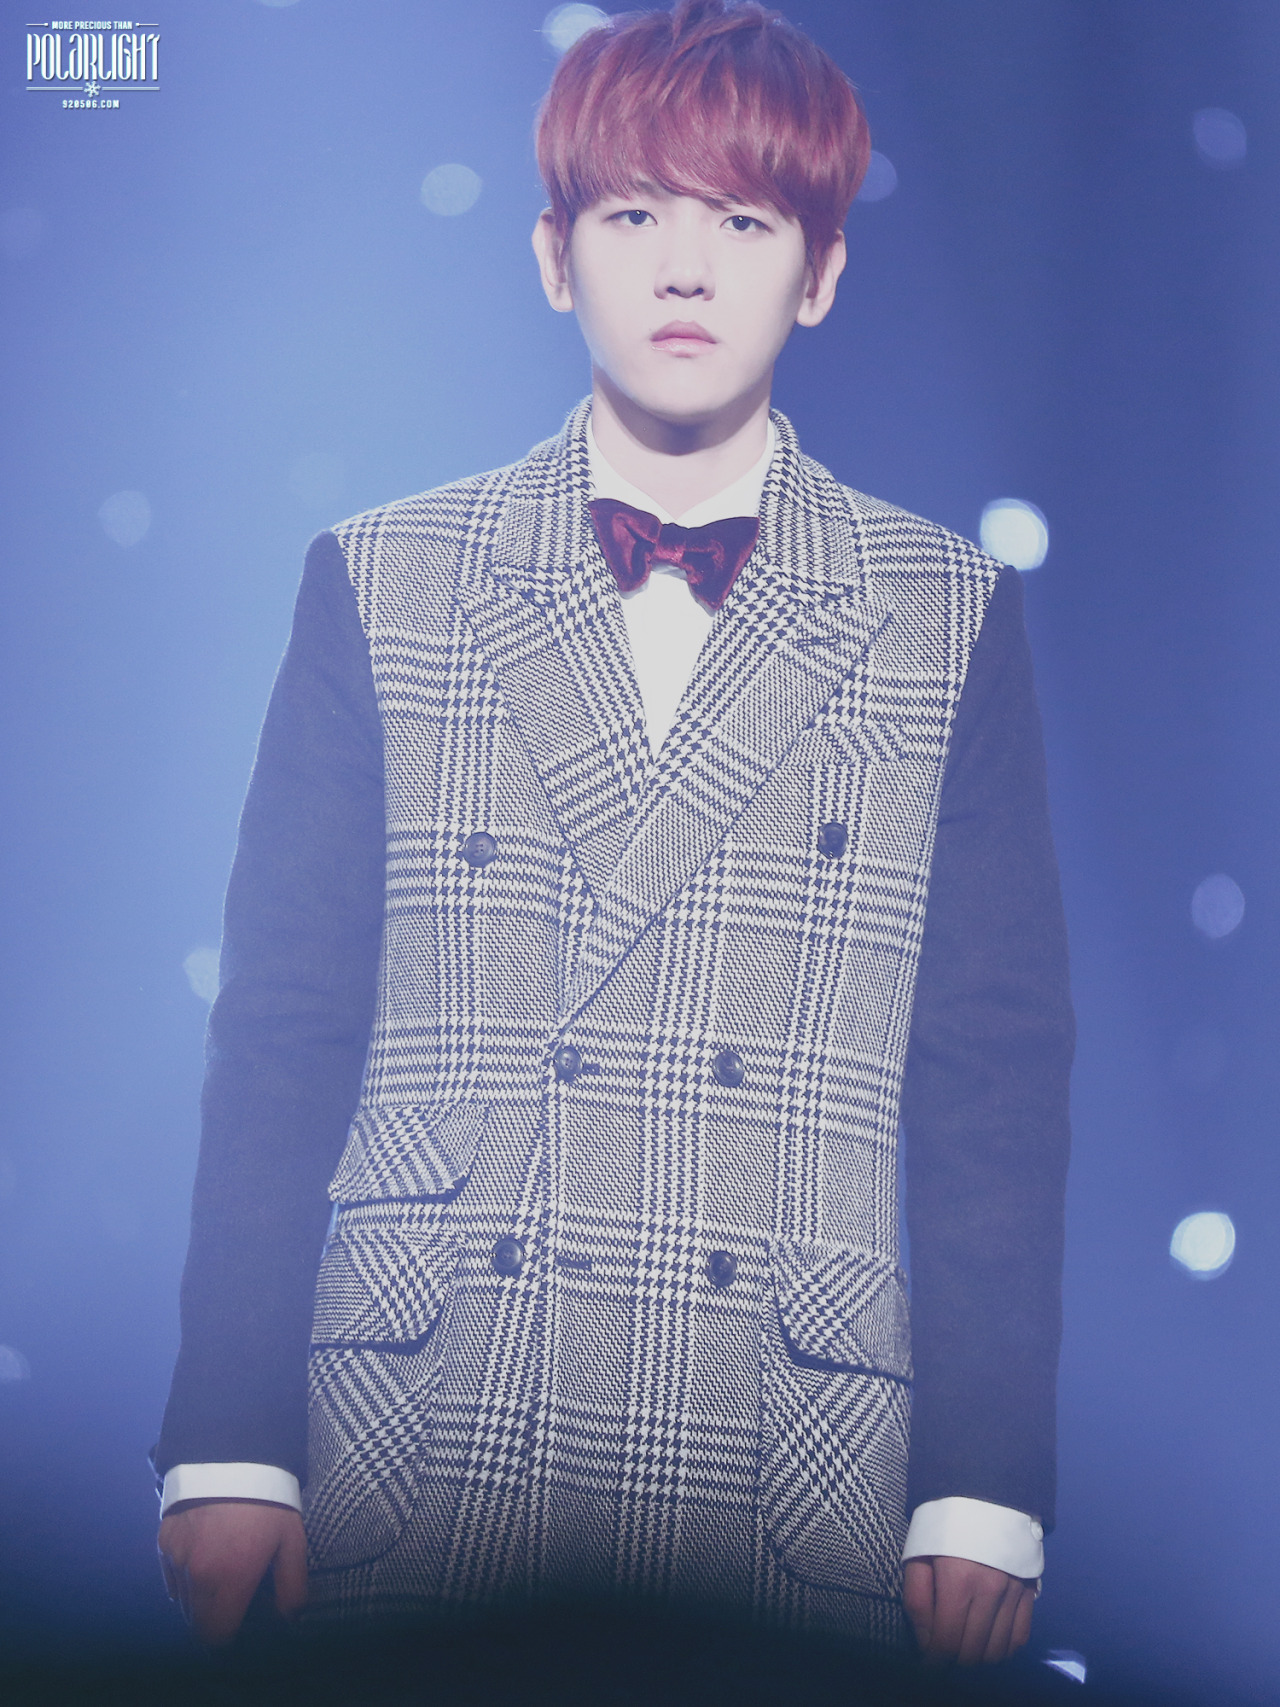 polarlight | do not edit.